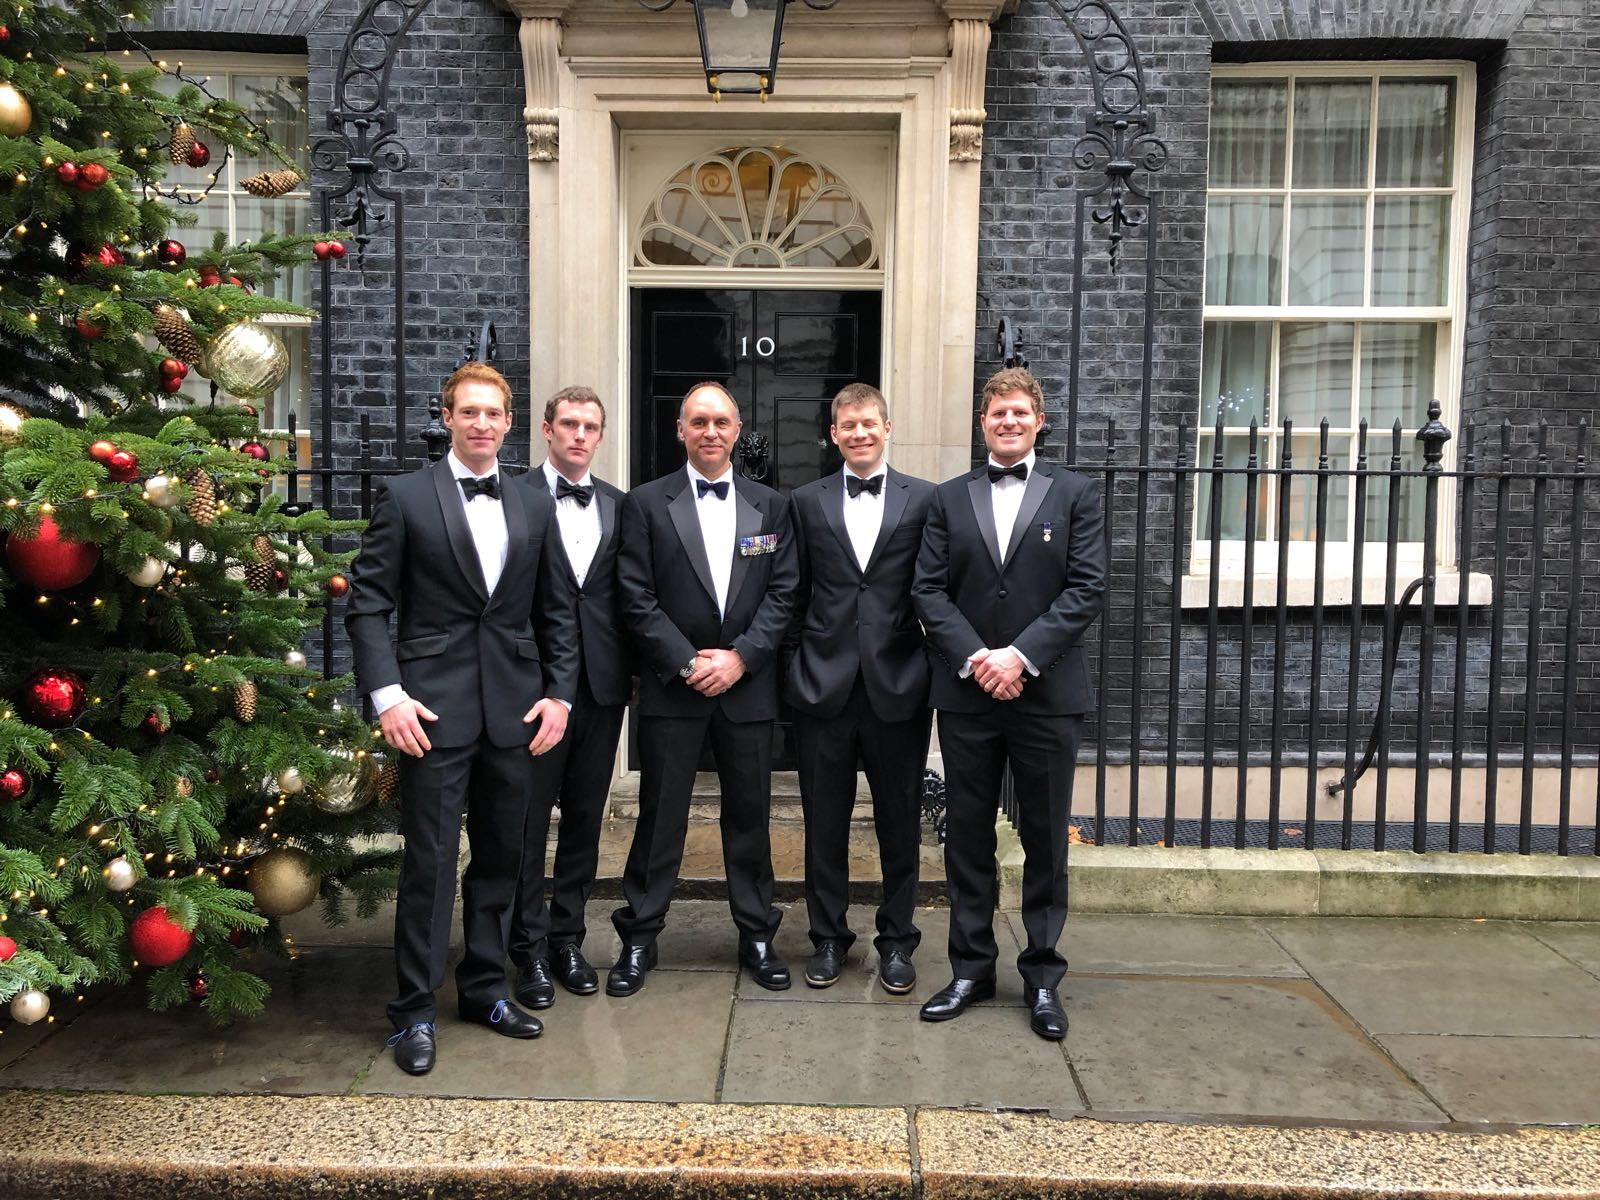 The SPEAR17 team outside Number 10 Downing Street before the Millies